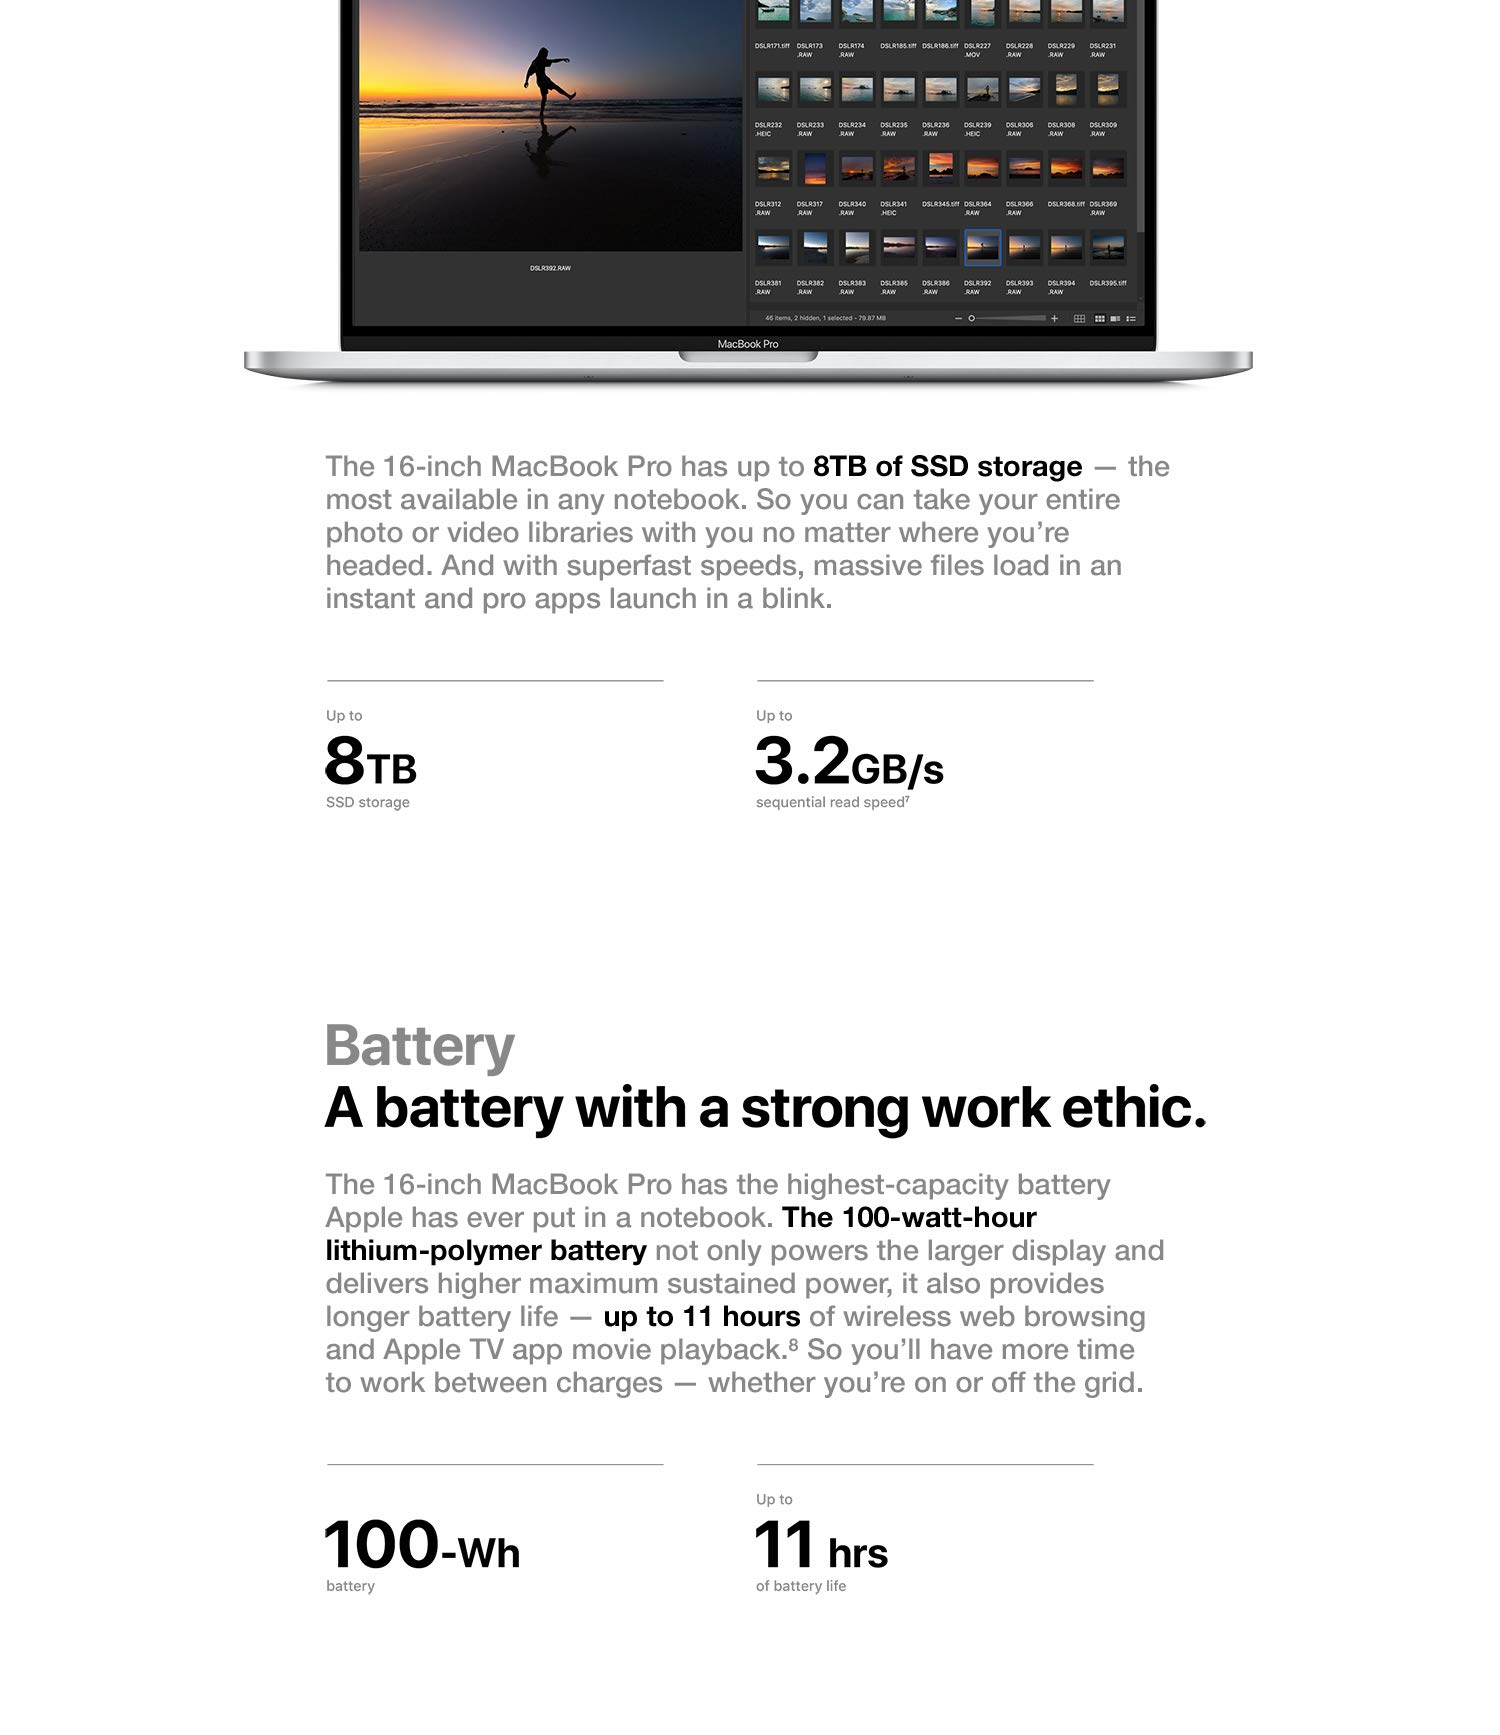 Storage. Bring you whole studio with you. The 16-inch MacBook Pro has up to 8TB of SSD storage - the most available in any notebook. So you can take your entire photo or video libraries with you no matter where you're headed. And with super fast speeds, massive files load in an instant and pro apps launch in a blink. Battery. A battery with a strong work ethic. The 16-inch MacBook Pro has the highest-capacity batter Apple has ever put in a notebook. The 100-watt-hour lithium-polymer battery not only powers the larger display and delivers higher maximum sustained power, it also provides longer battery life - up to 11 hours of wireless web browsing and Apple TV app movie playback. So you'll have more time to work between charges - whether you're on or off the grid.